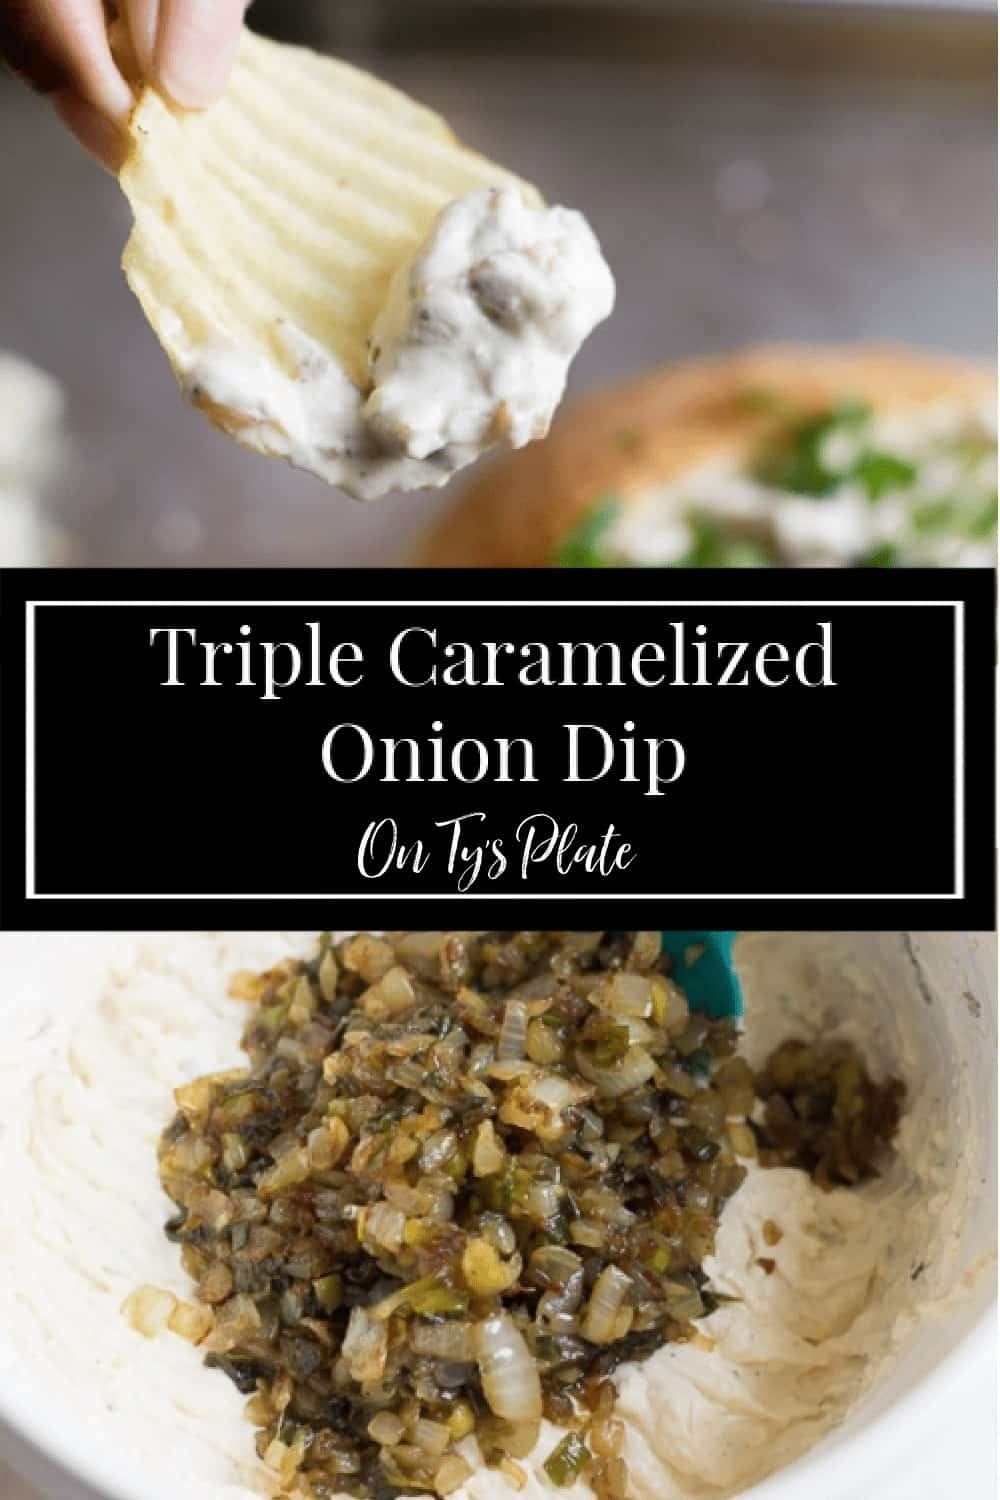 Triple Caramelized Onion Dip